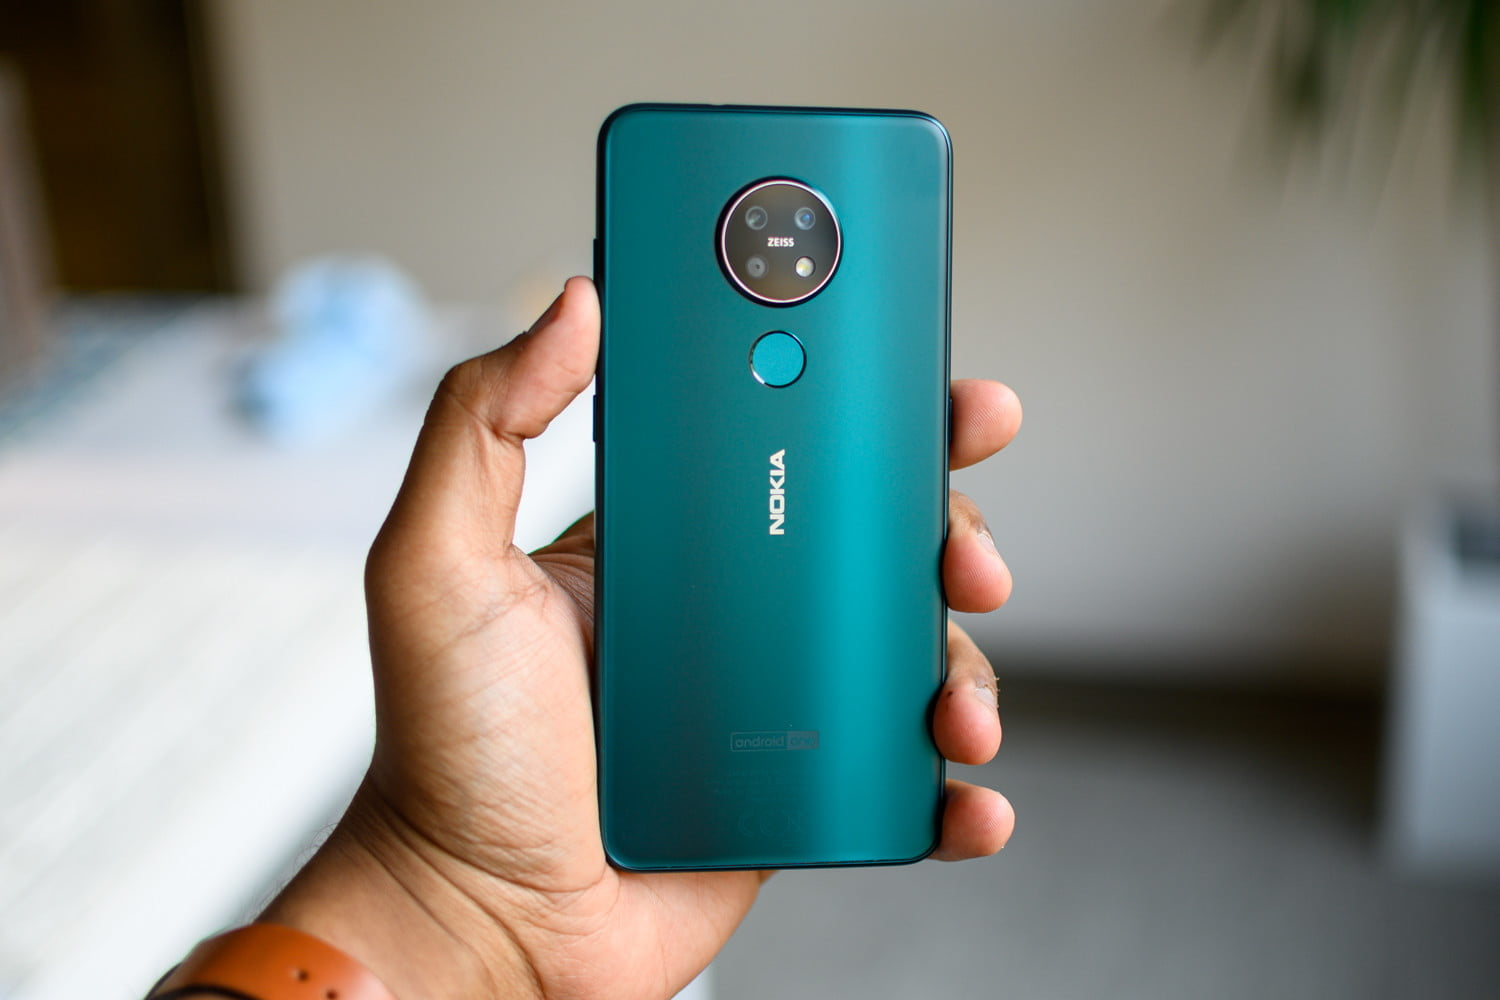 Nokia 7 2 Hands-on Review: Gunning for Google's Pixel 3a